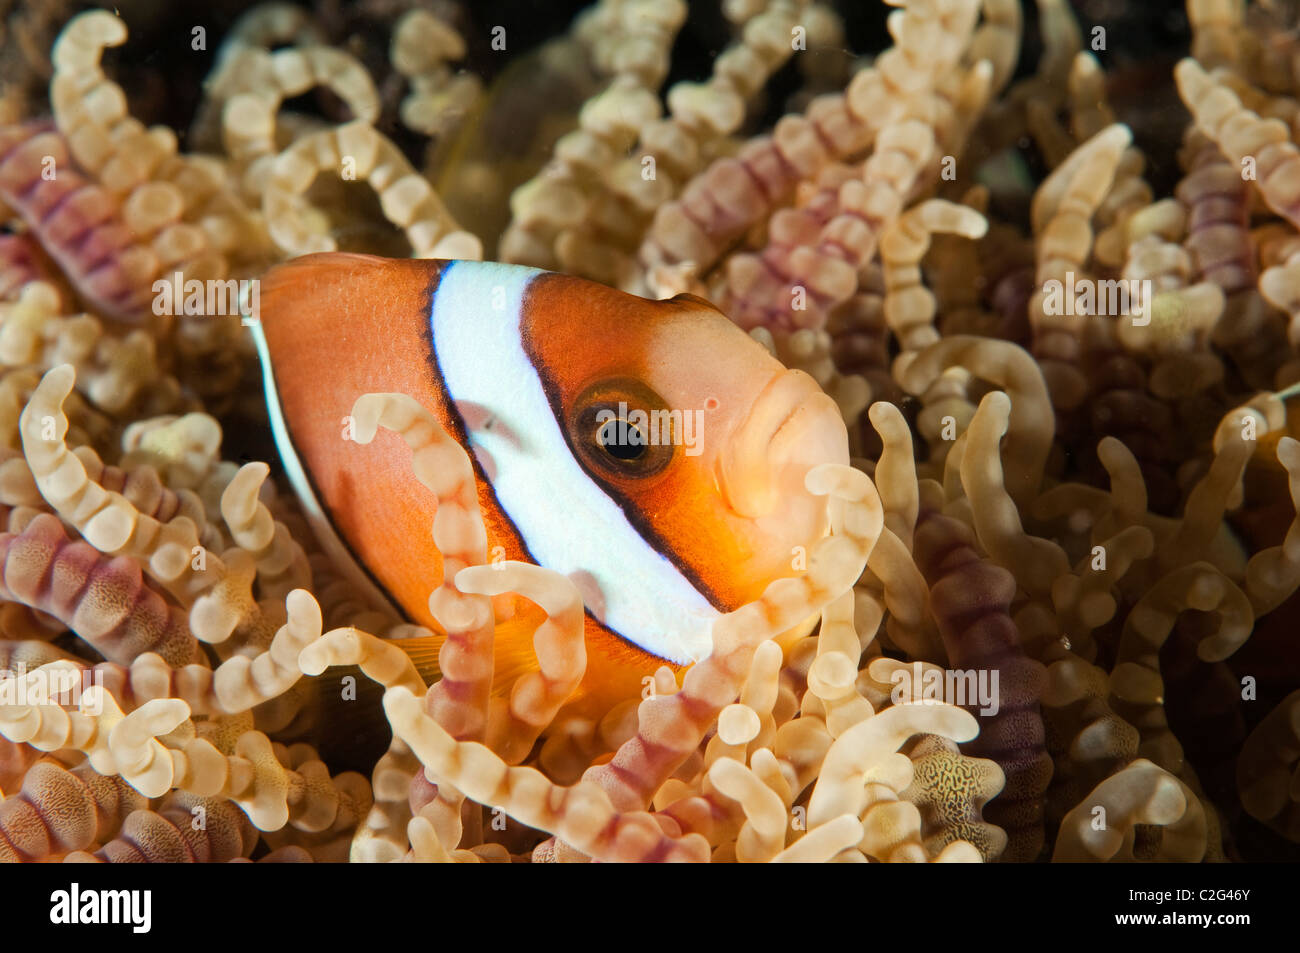 Clark anemonefish, Amphiprion clarkii, in a beaded sea anemone, Sulawesi Indonesia. - Stock Image